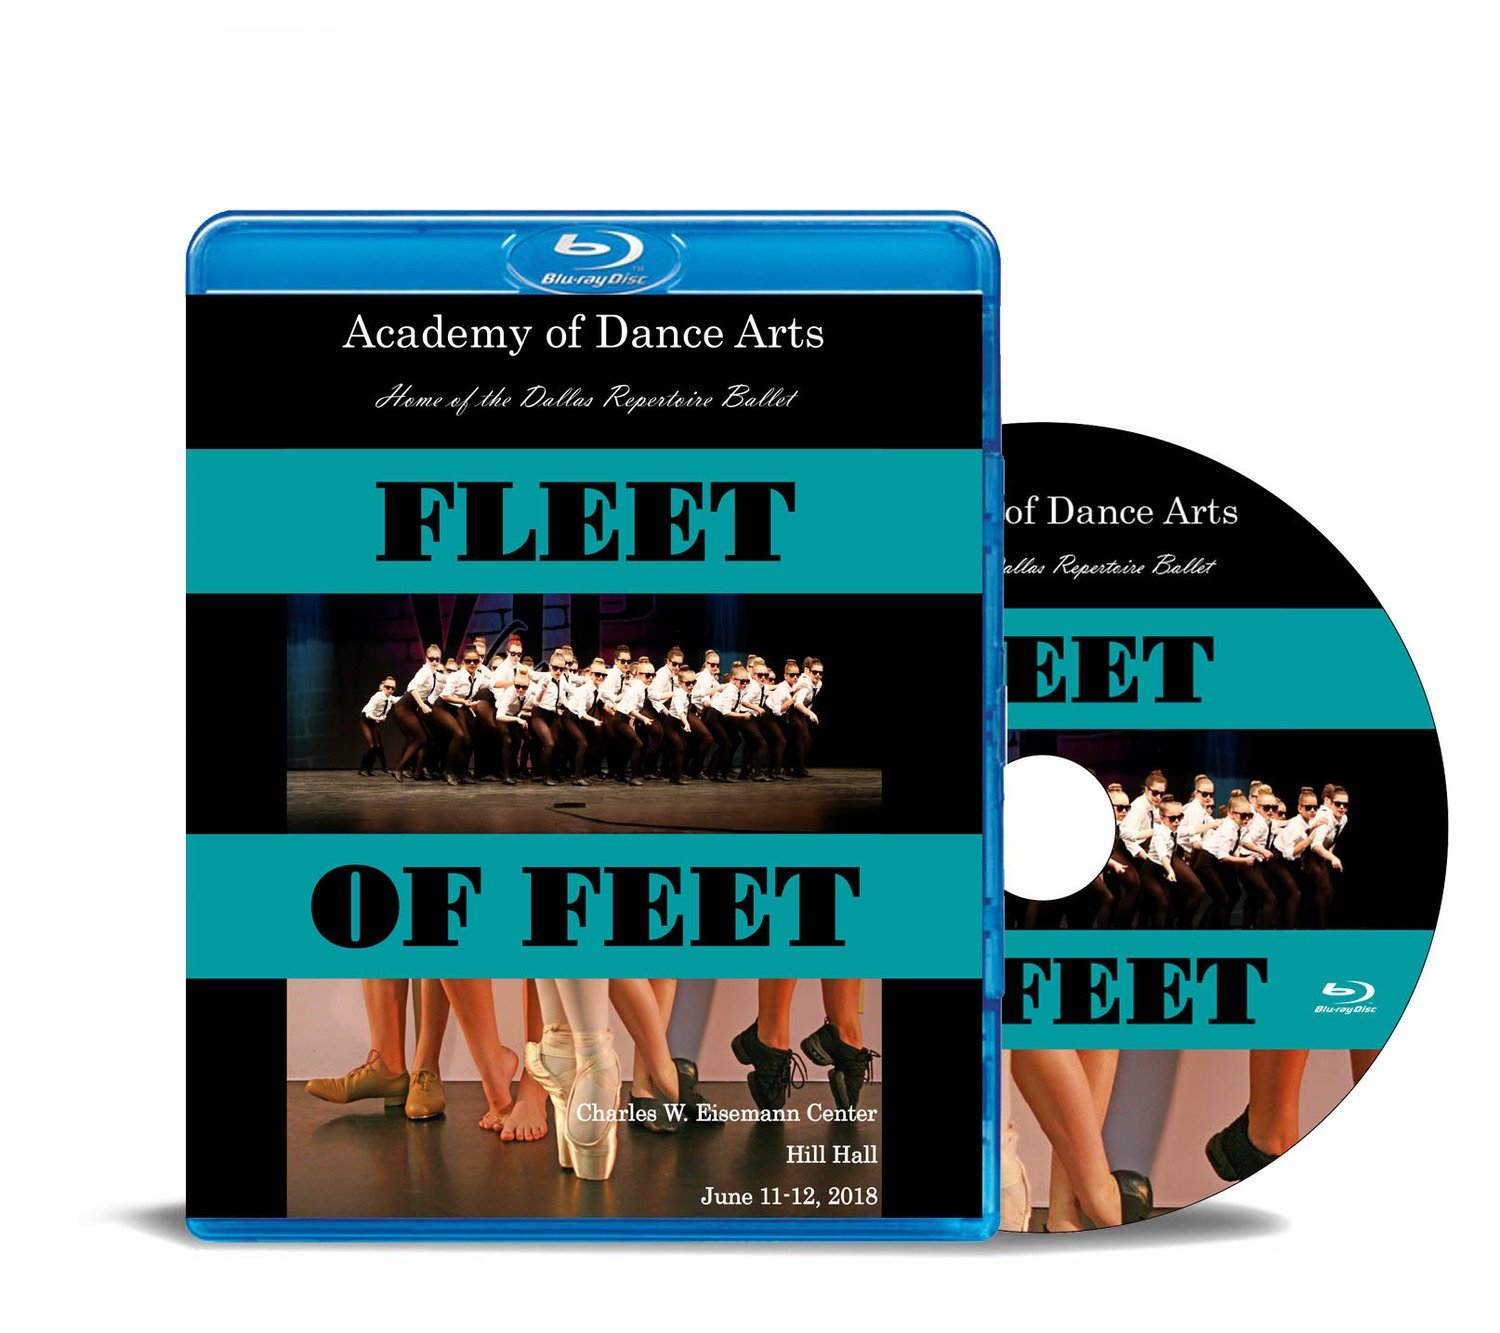 Fleet of Feet 2018 Blu-ray